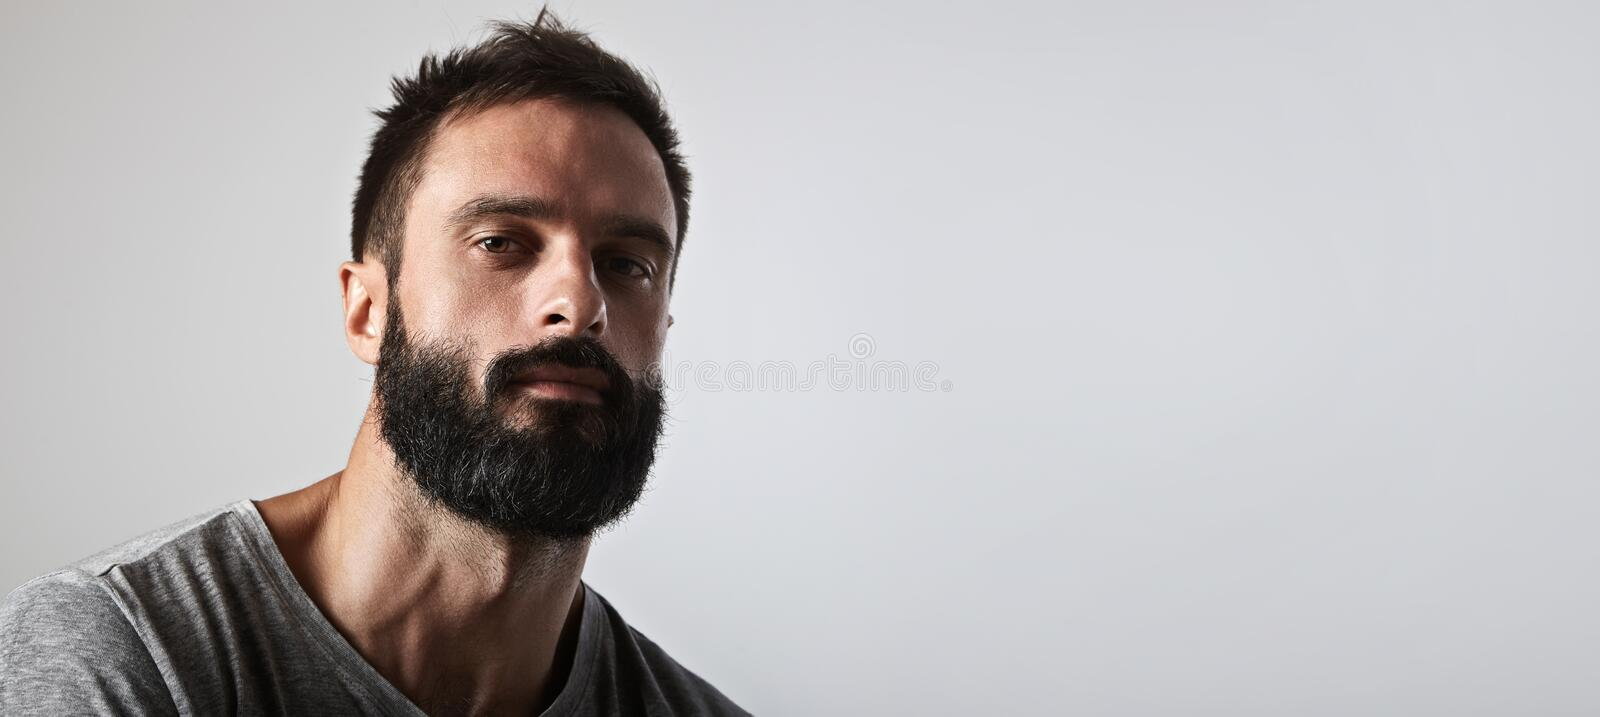 Handsome bearded man looking at camera royalty free stock photo